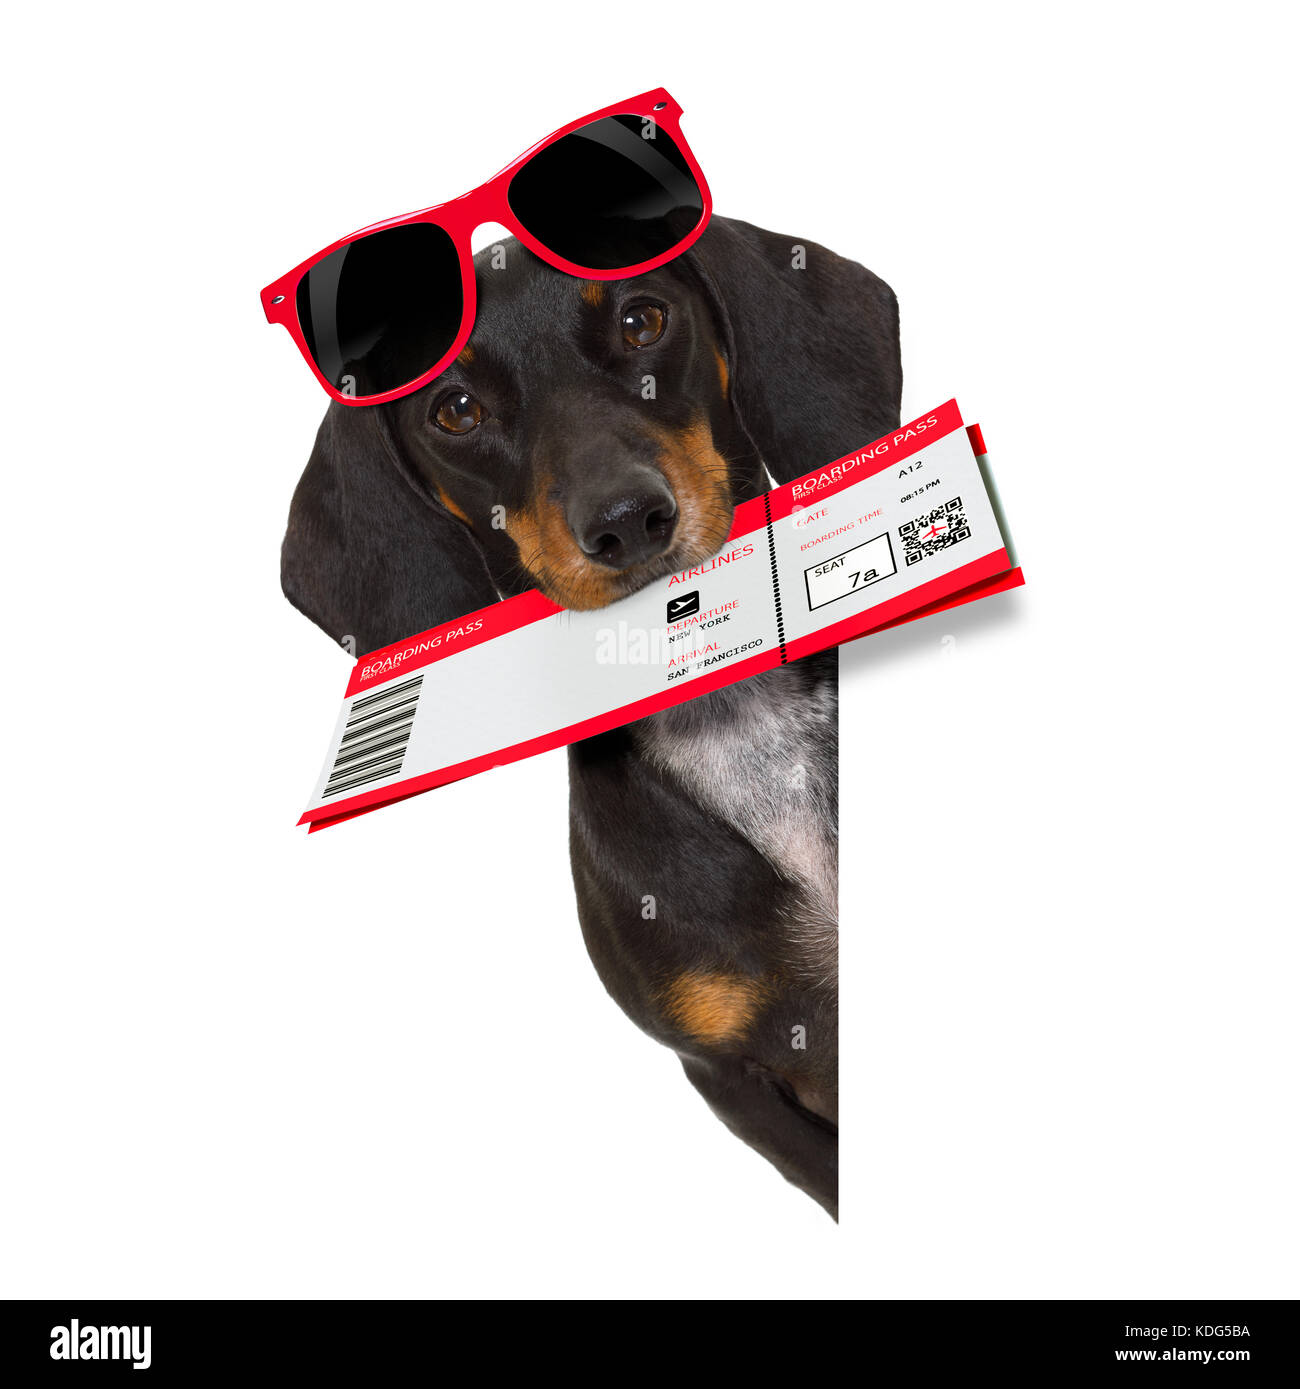 dachshund or sausage  dog on summer vacation holidays with airline flight ticket  isolated on white background - Stock Image